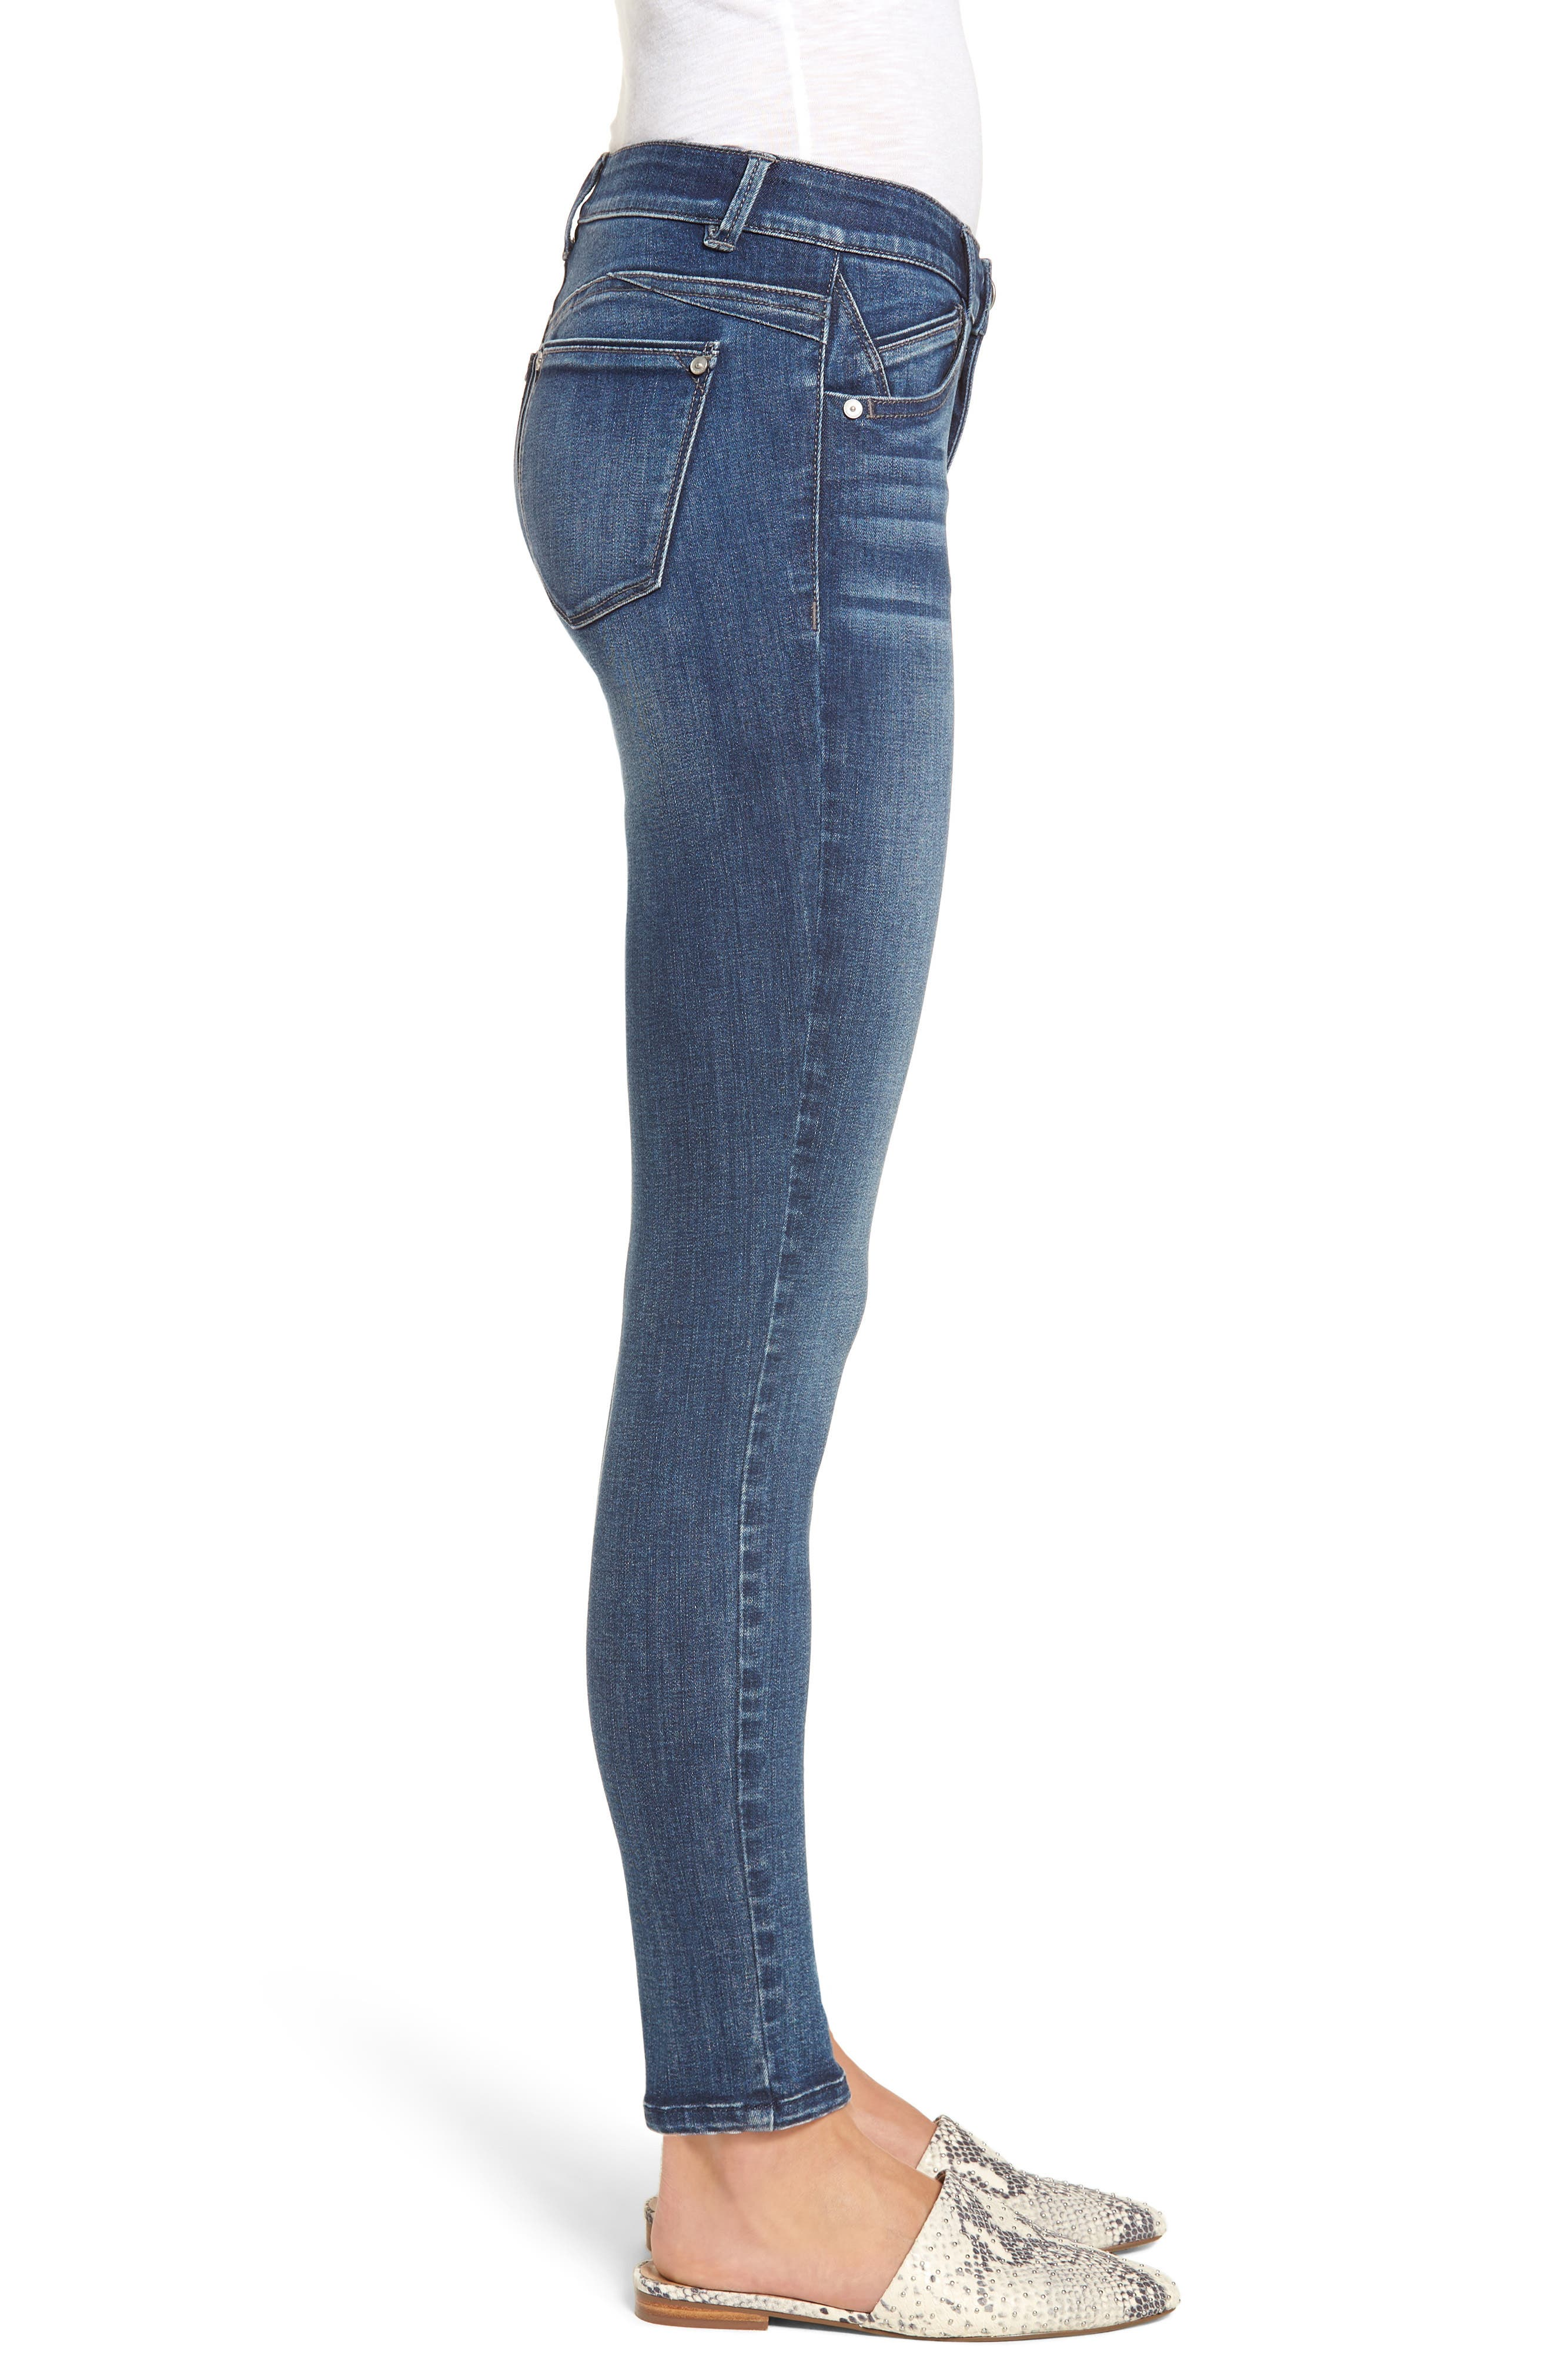 Ab-solution Ankle Skinny Jeans,                             Alternate thumbnail 3, color,                             420